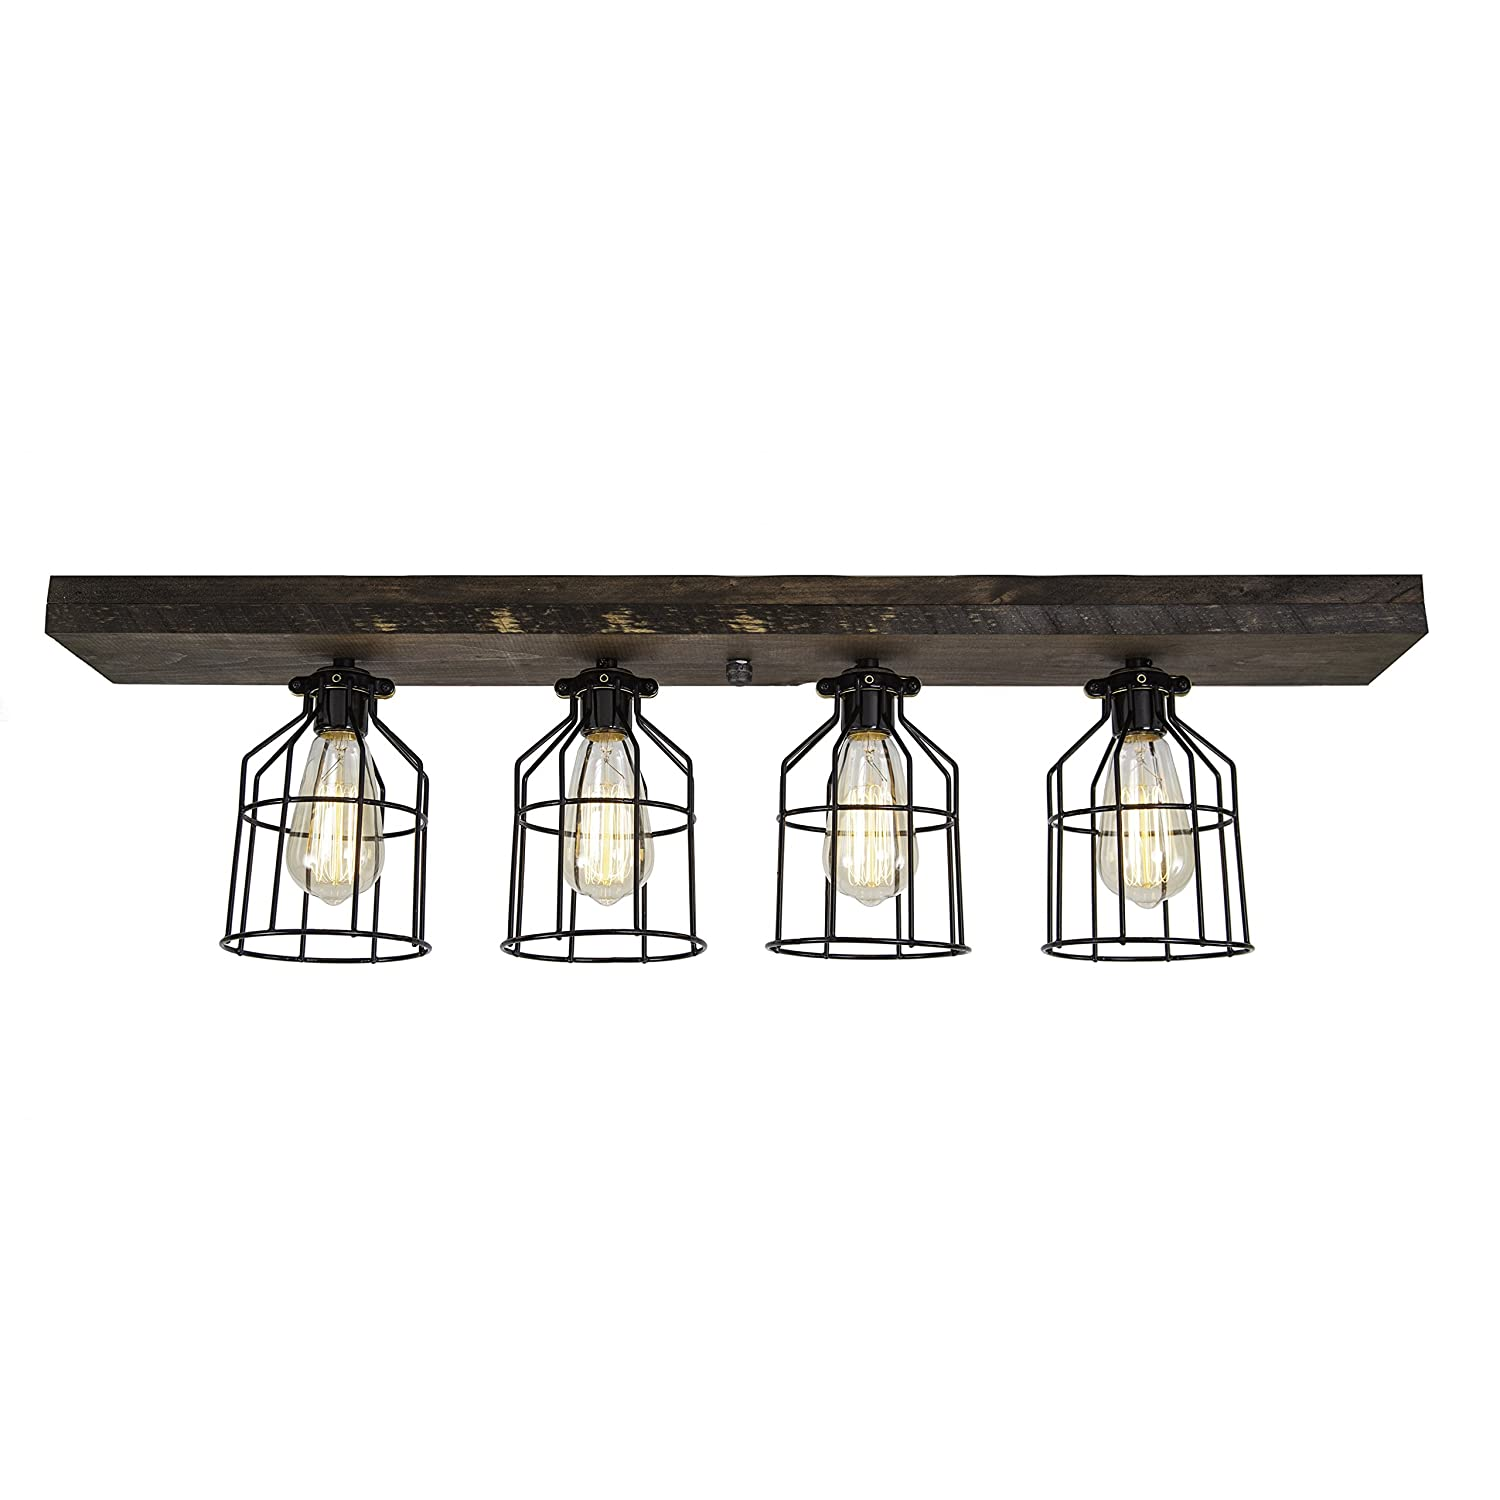 West Ninth Vintage Flush Wood Mount Ceiling Light | Perfect Indoor Farmhouse Home Decor With Light cages